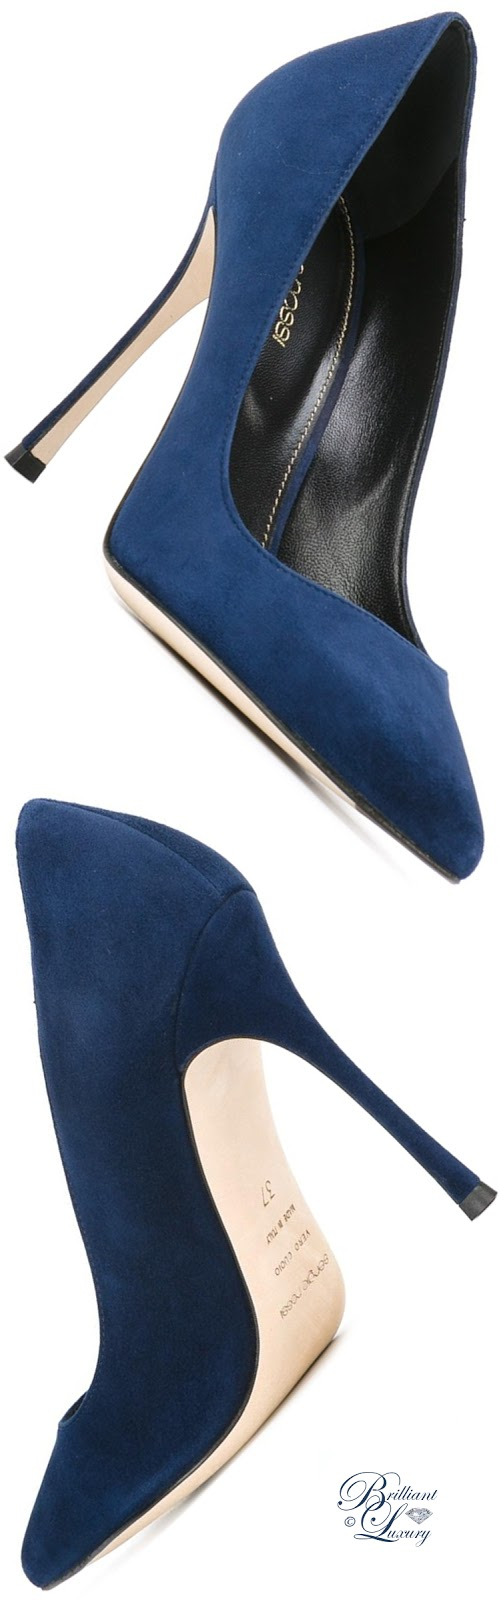 Brilliant Luxury ♦ Sergio Rossi Velours Stiletto Pumps #blue